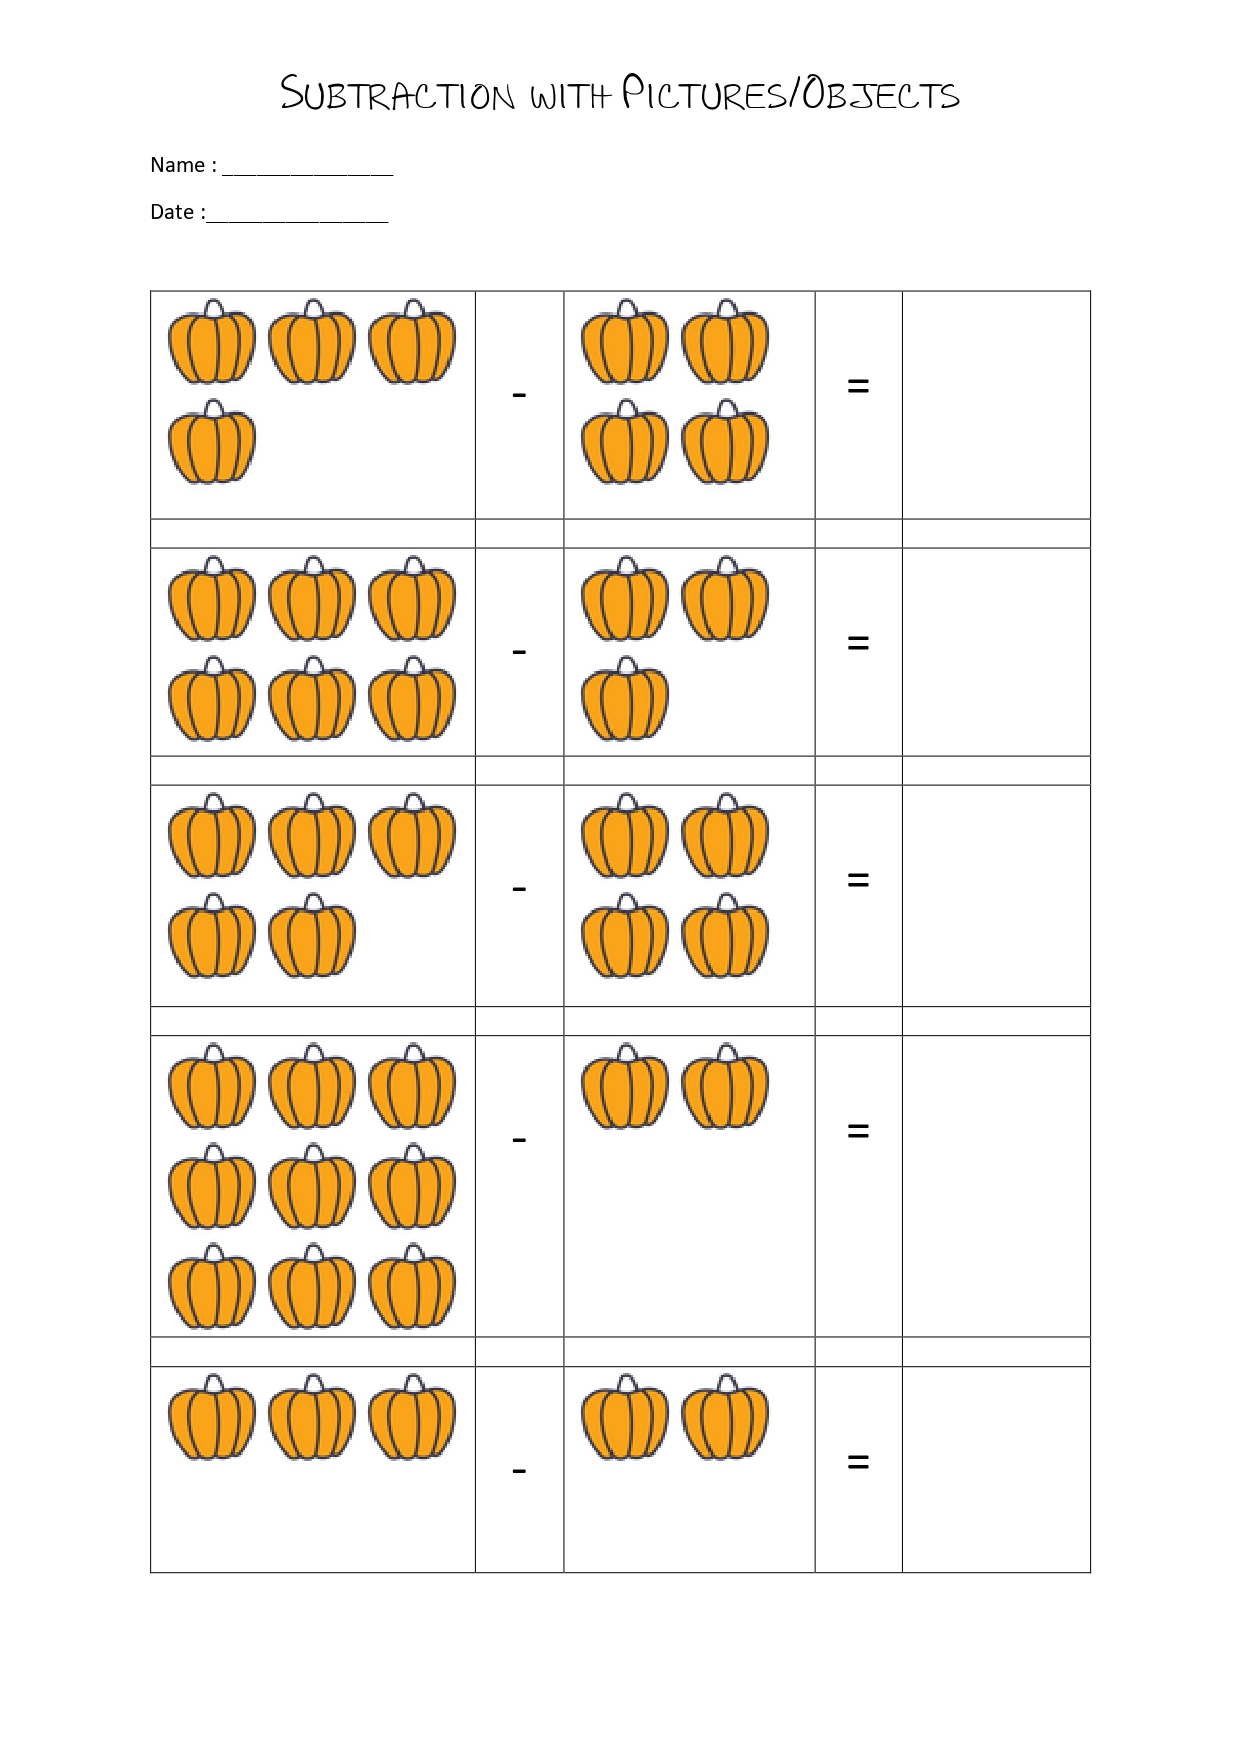 20 Subtraction Worksheets With Pictures For Kindergarten